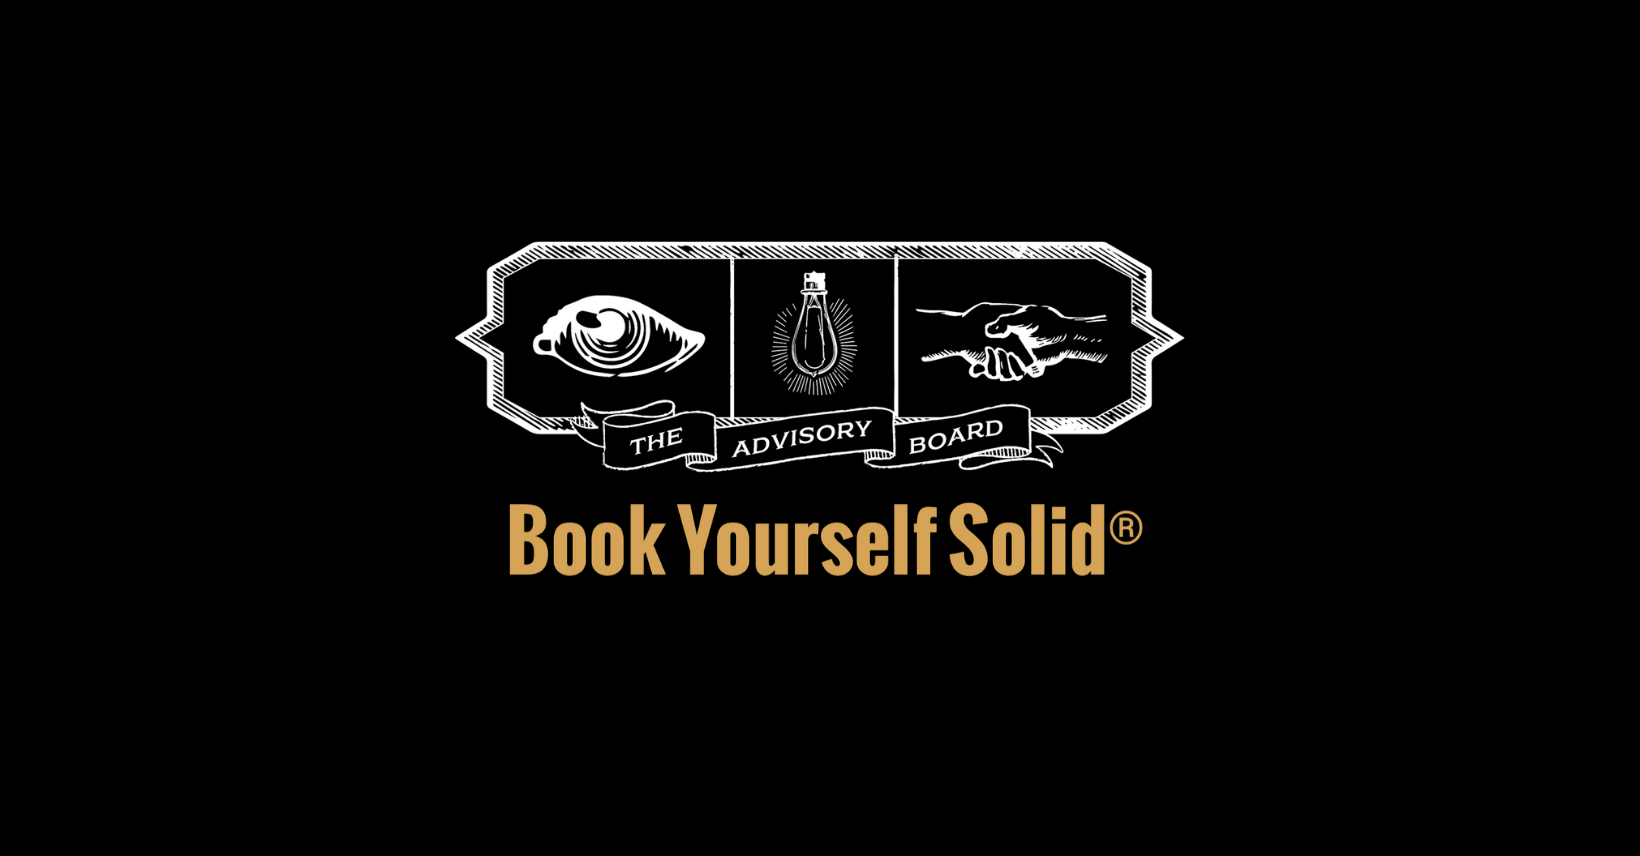 Join The Book Yourself Solid Advisory Board for Licensed Book Yourself Solid Coaches